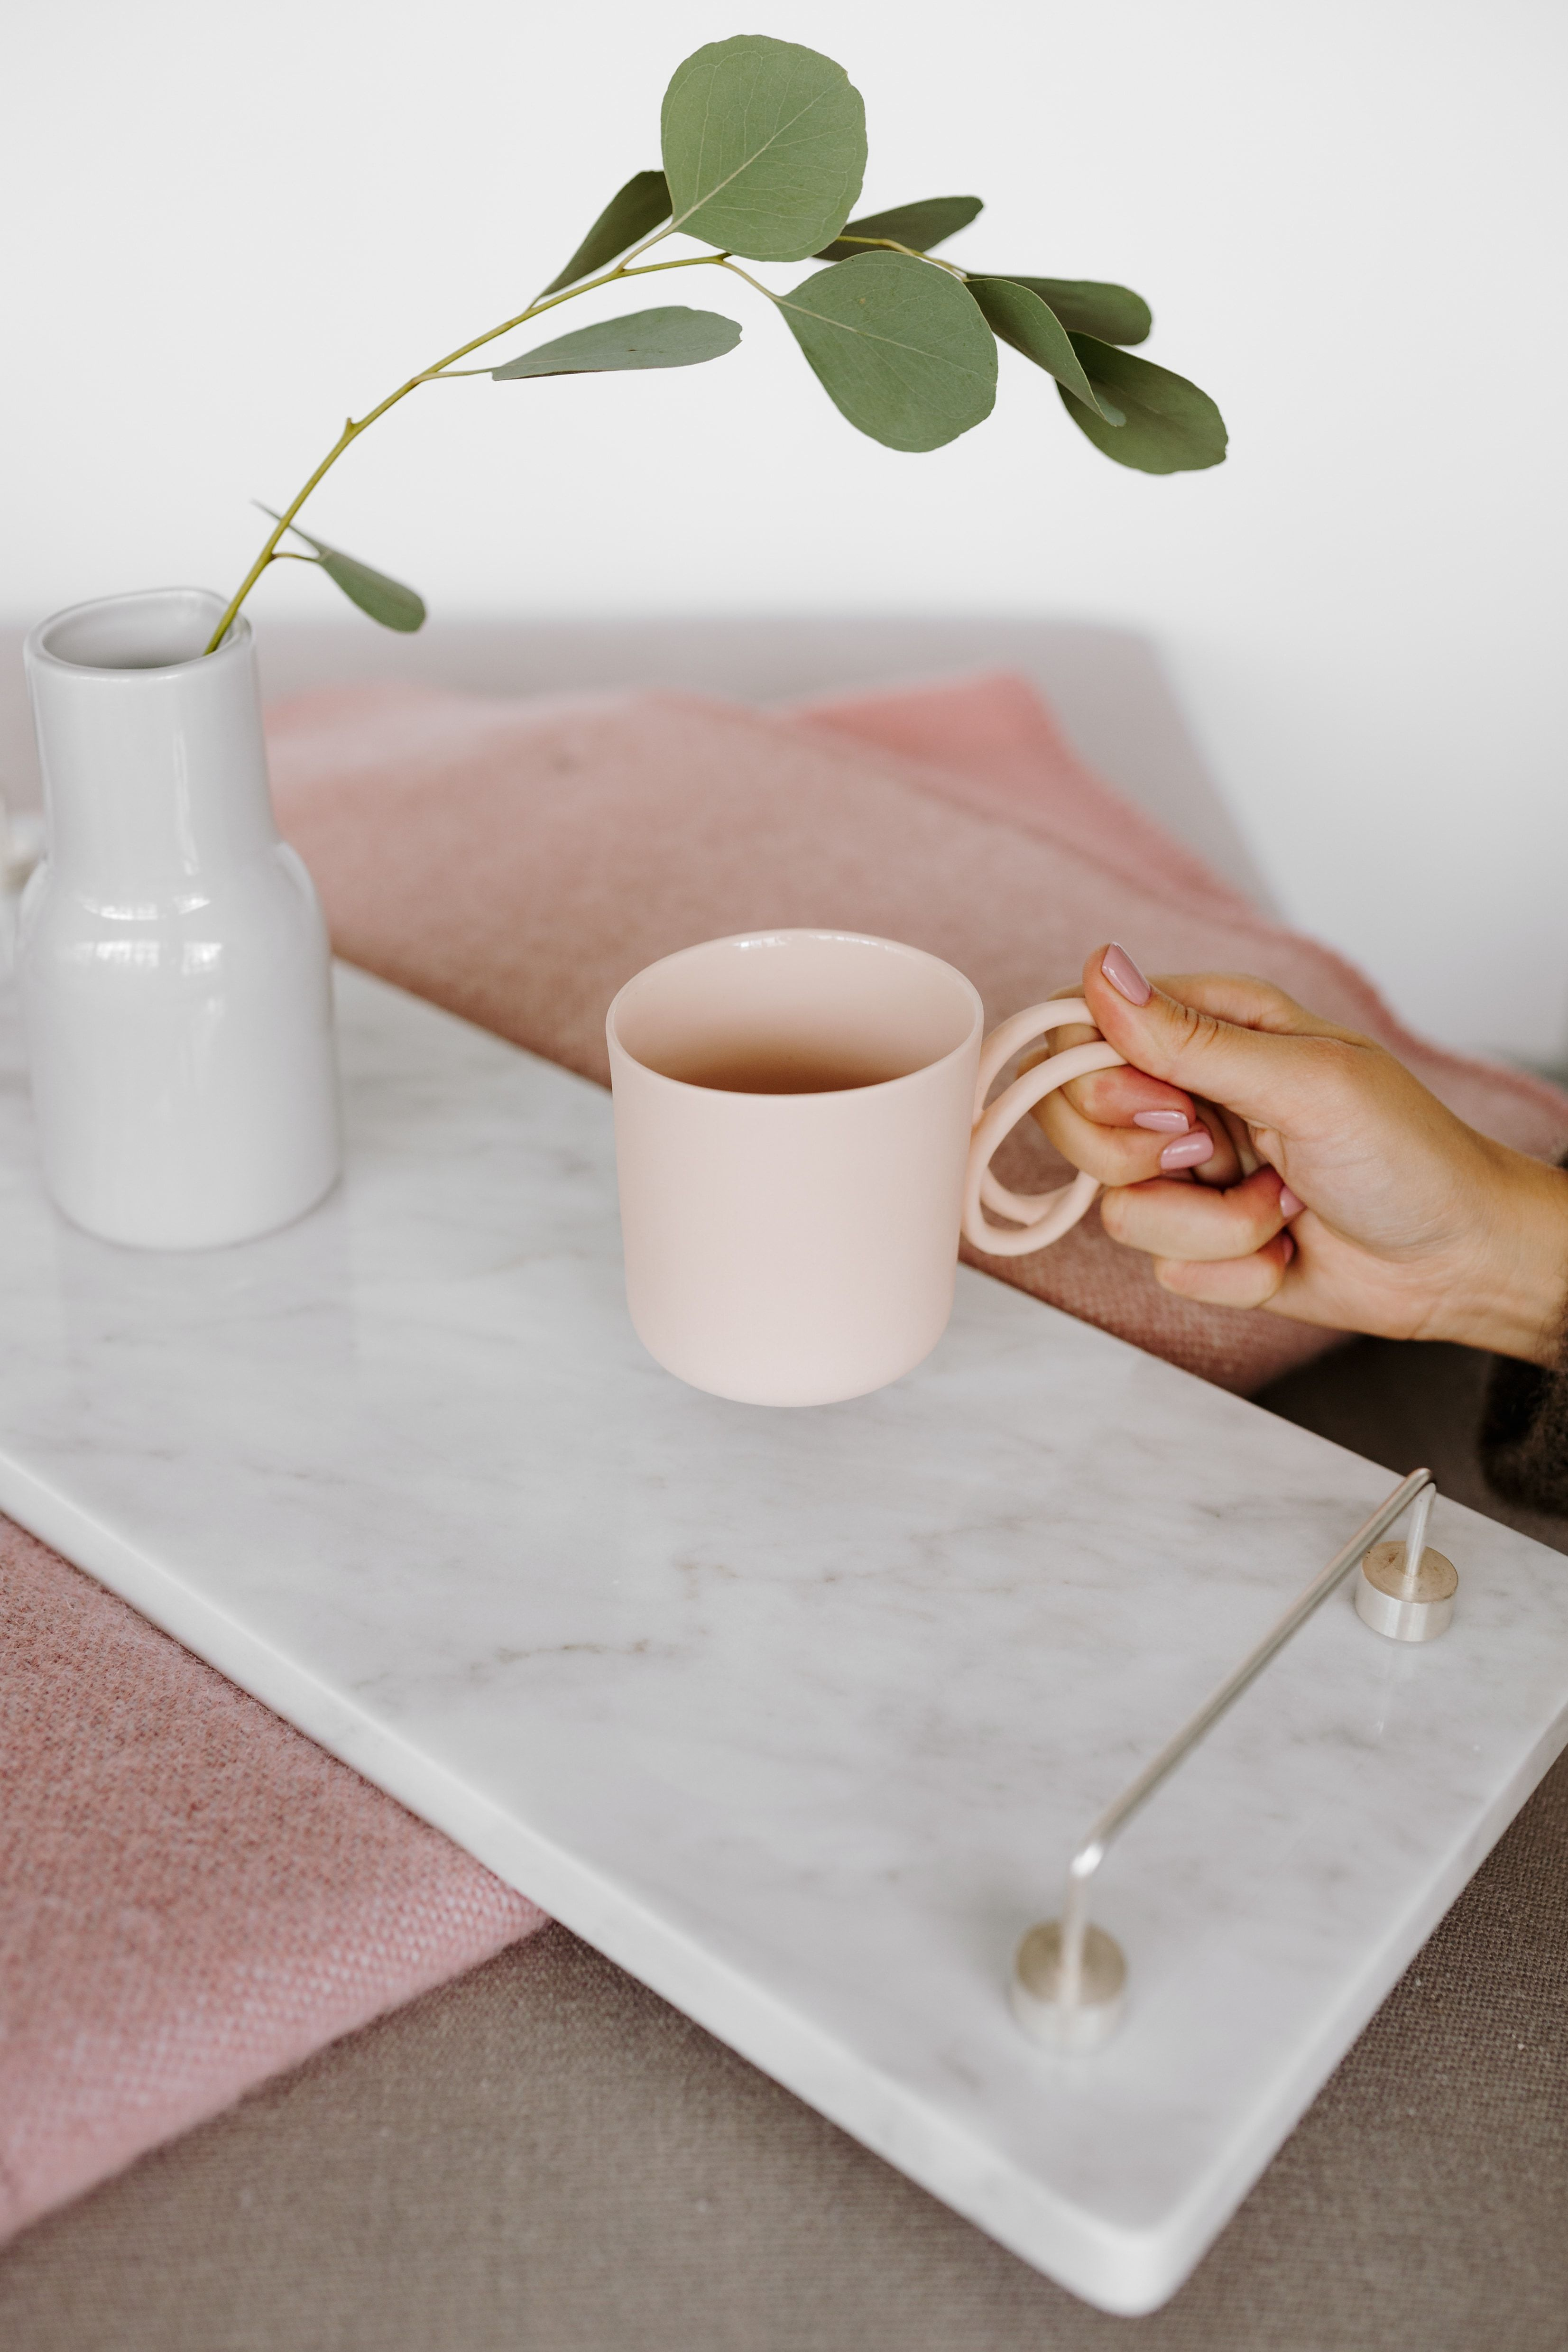 Marble tray with silver handles, #marble #marbledesign #marbleaccessories #tray #uncommon #uncommondesign #homedecor #homedesign #homeaccessories fot. Karolina Grabowska//KABOOMPICS